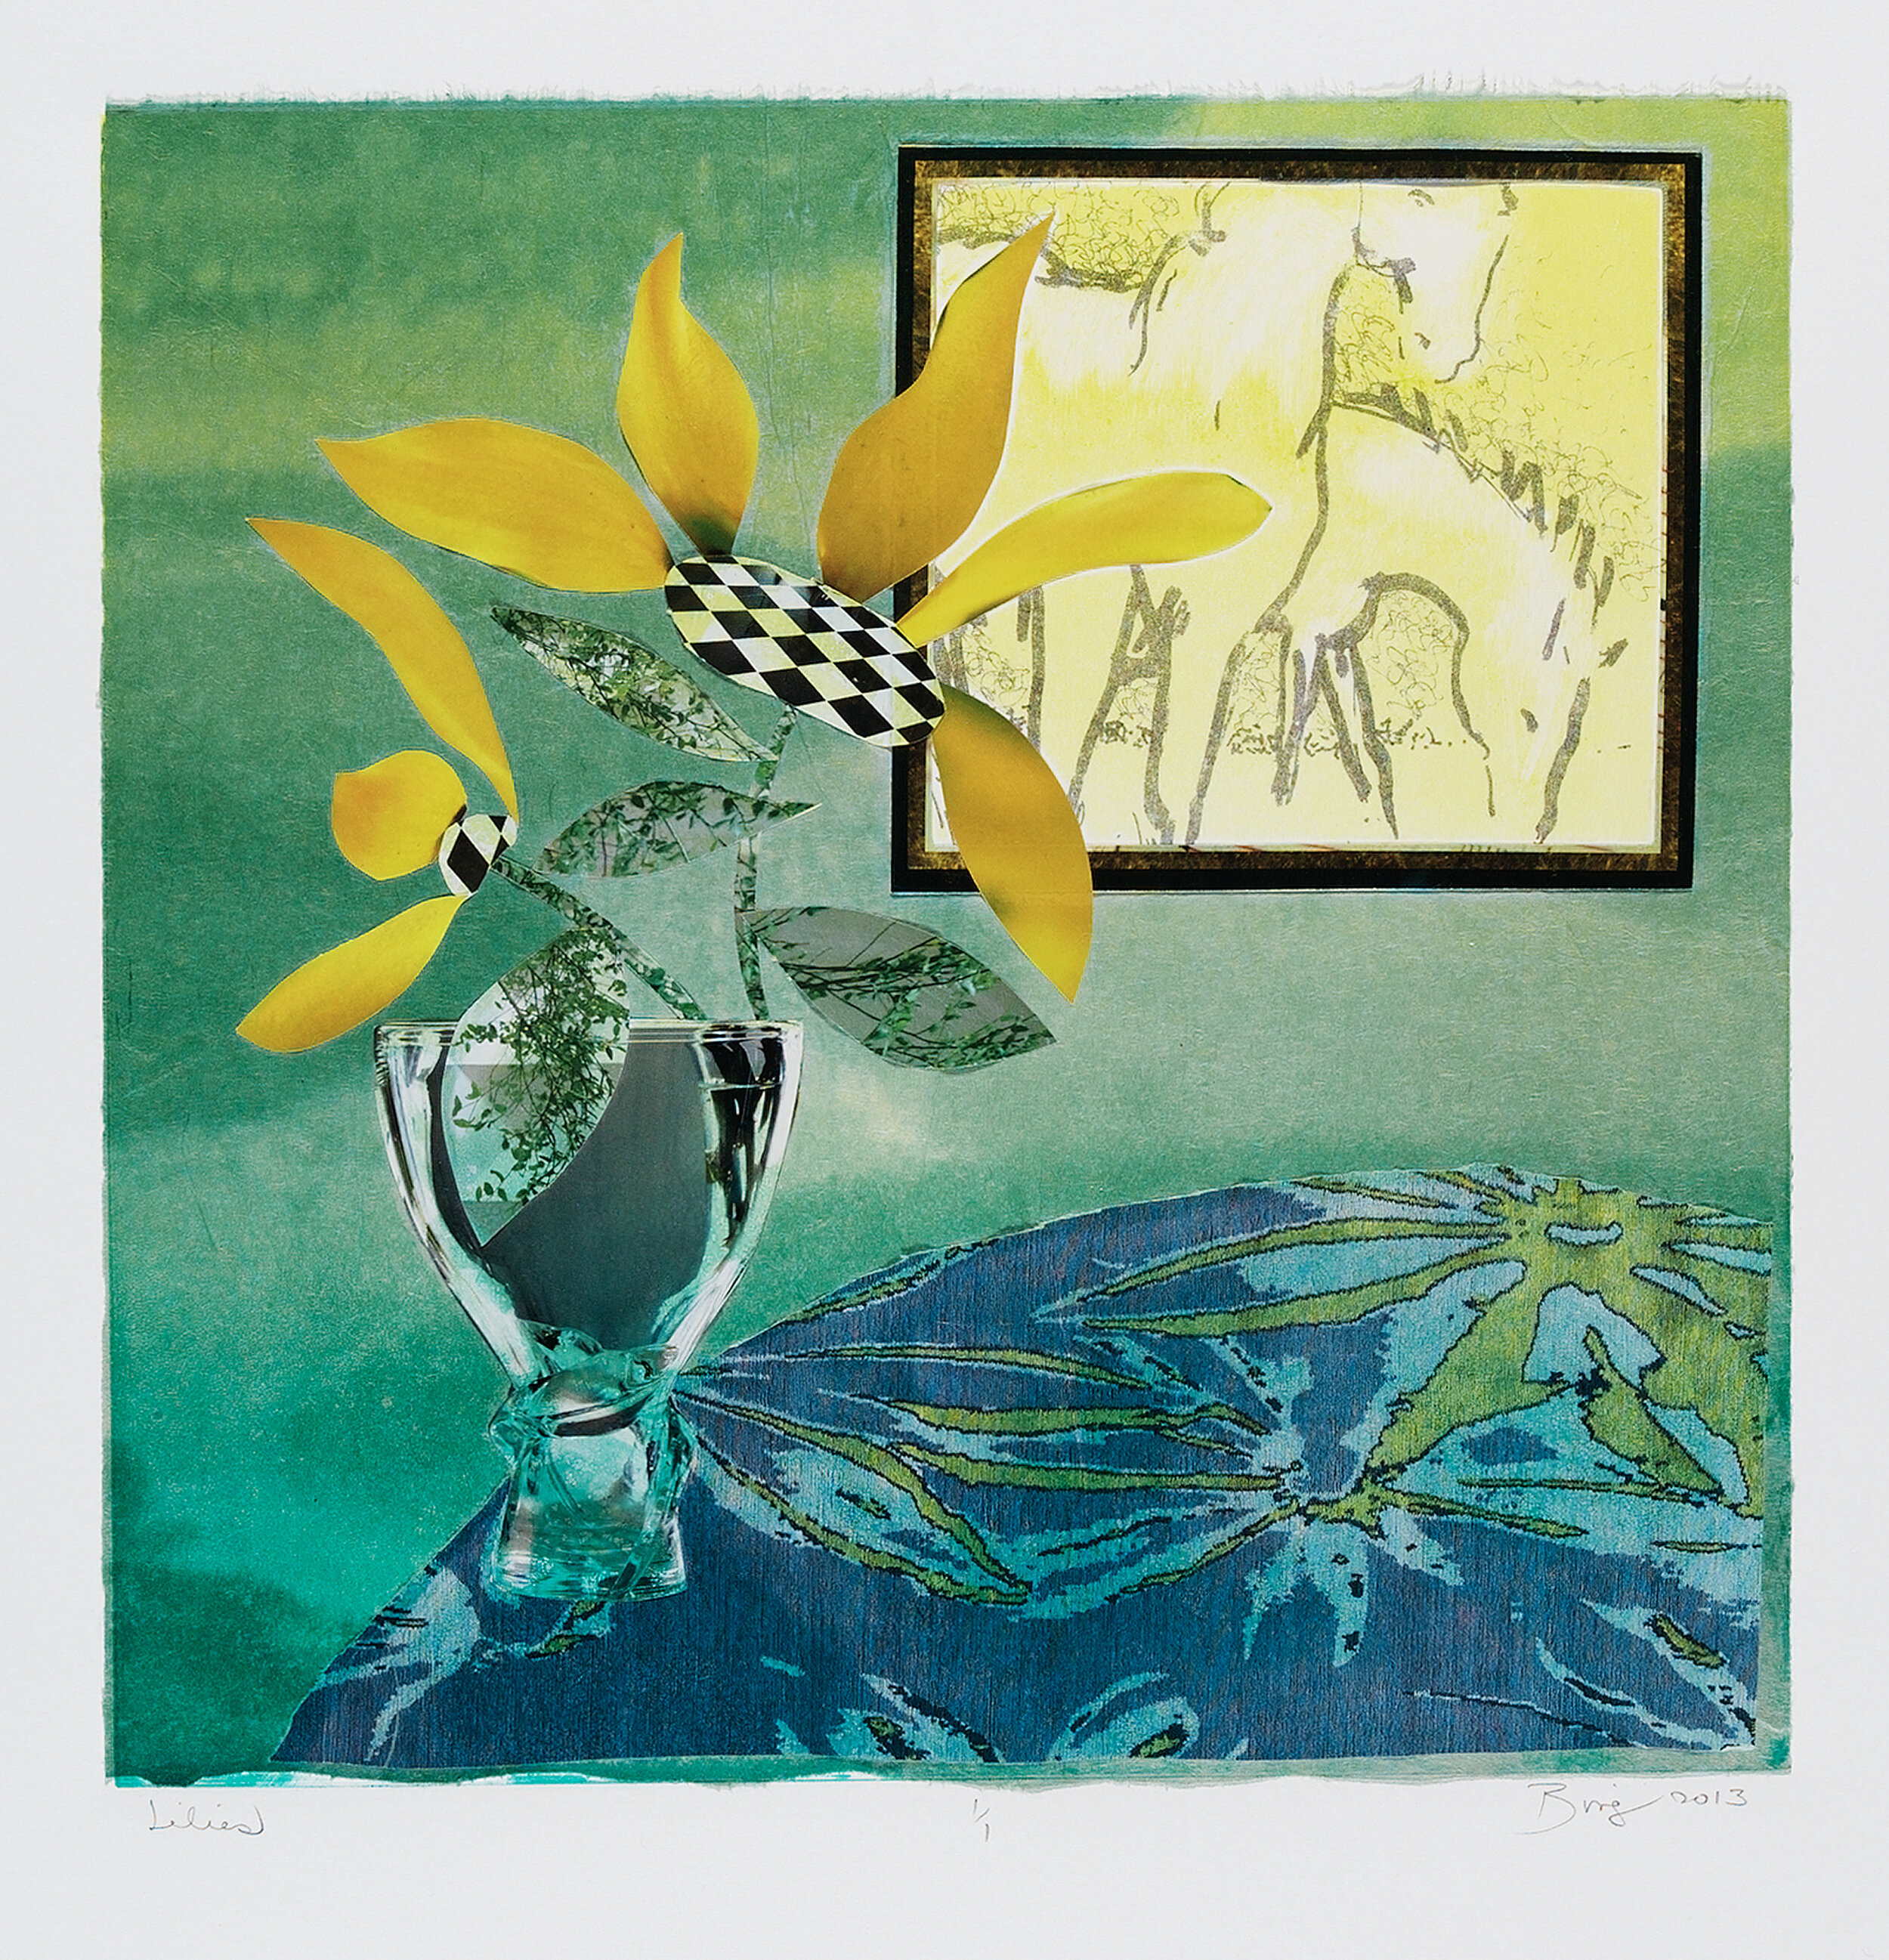 Monotype of green vase yellow flowers in green room viewing painting of two white horses